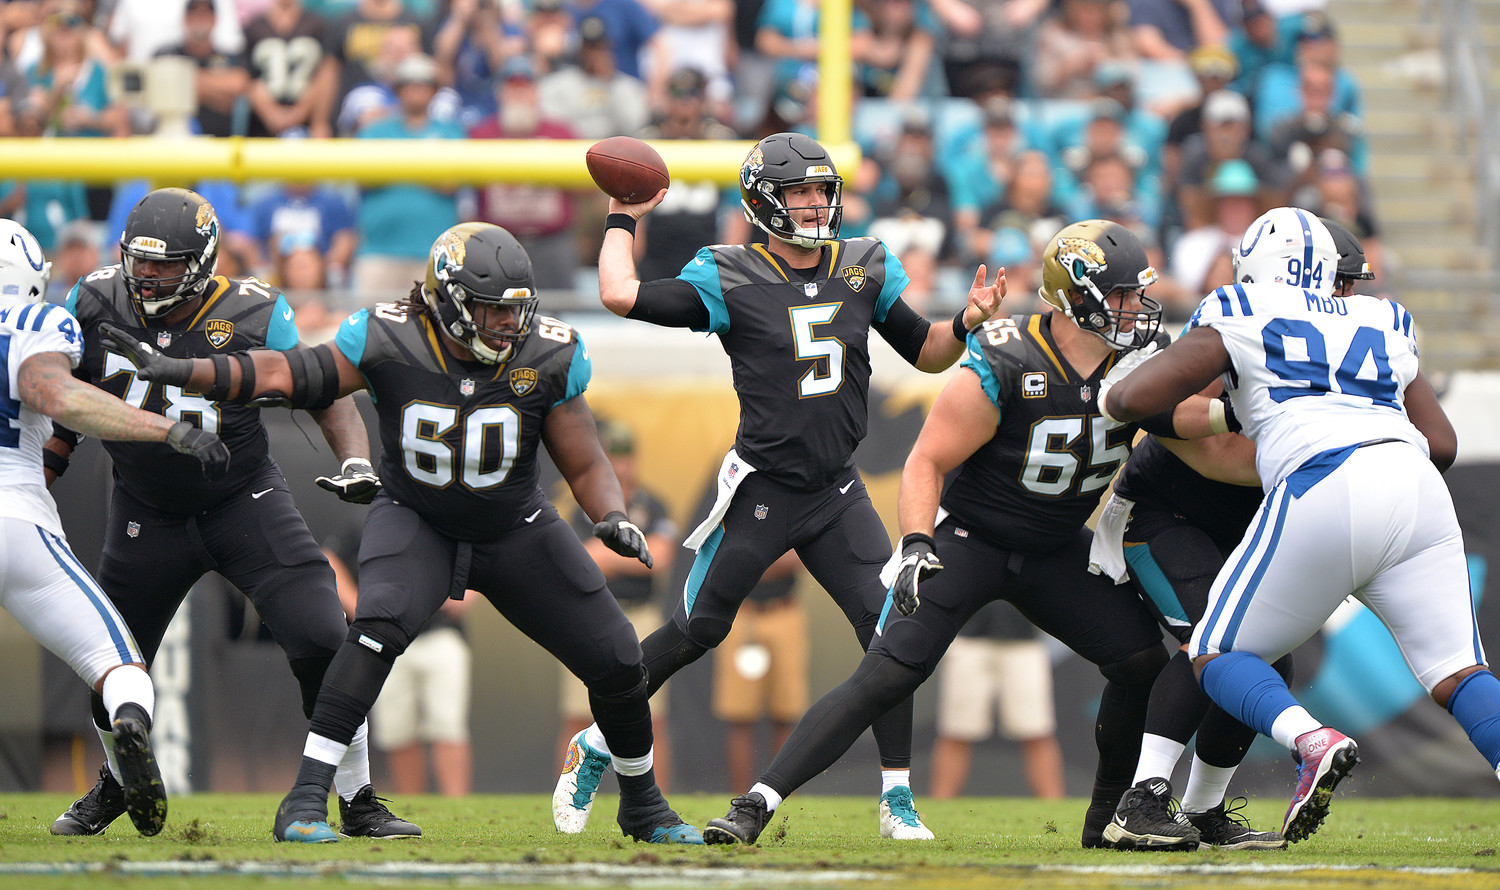 Jaguars quarterback Blake Bortles, who finished 26 of 35 for 309 yards and two touchdowns, eyes a receiver downfield.